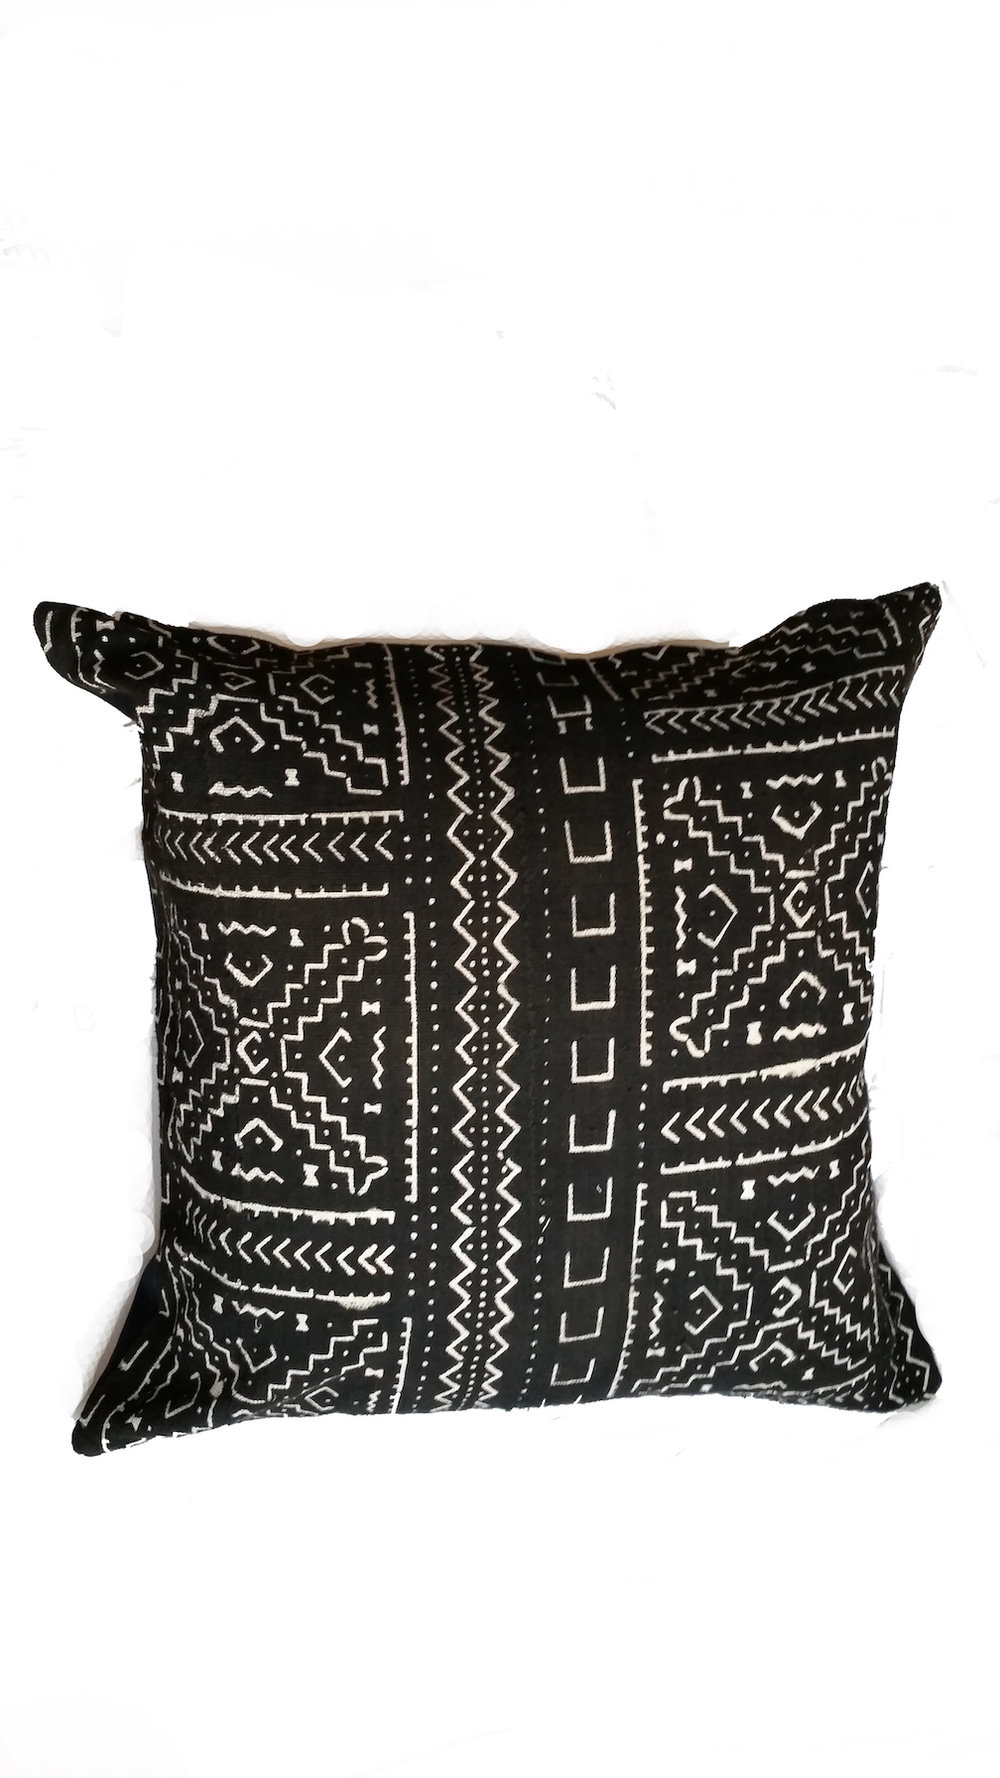 MUD CLOTH PILLOW   Handmade and dyed mud cloth from Burkina Faso by textile masters. Sewn by master tailors in Tamale, Ghana.